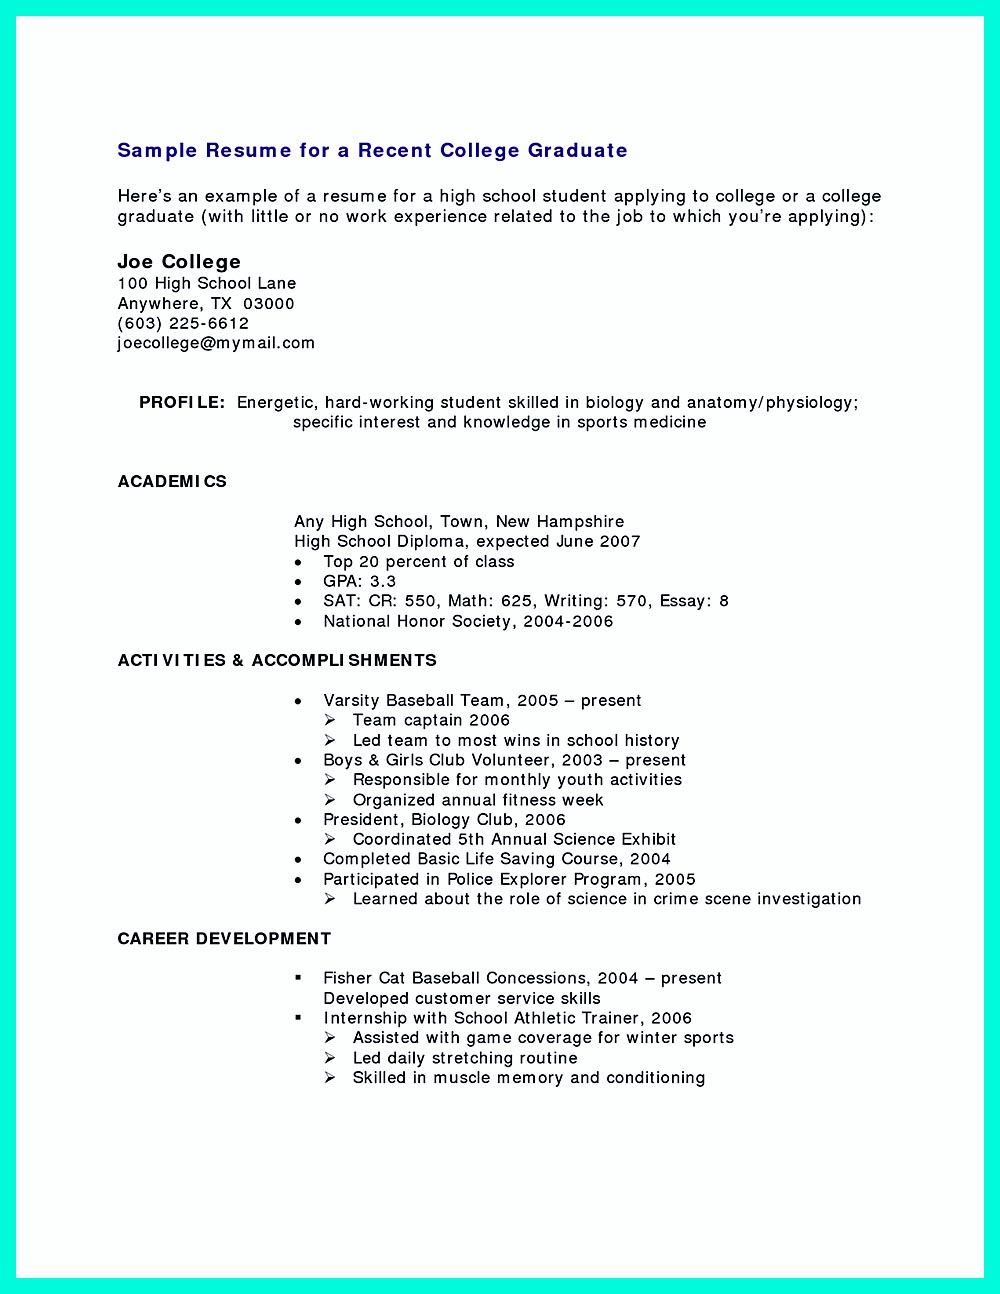 College Resume College Graduate Resume Is Neededif You Think Resume Is Not